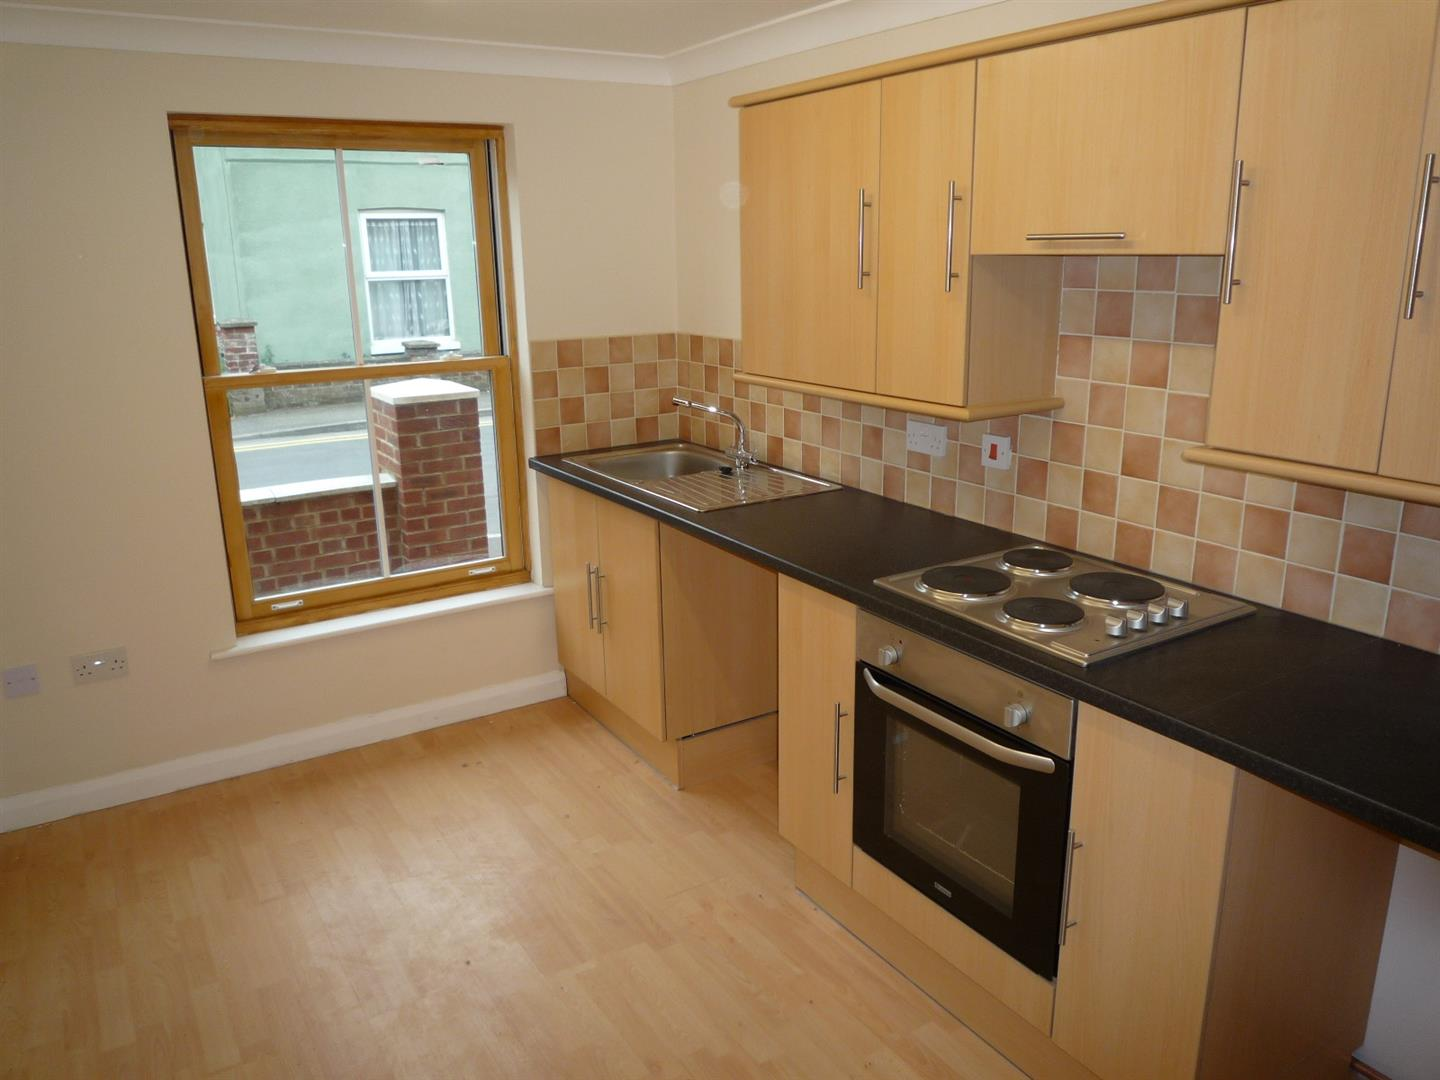 3 bed house to rent in Holbeach Spalding, PE12 7DR  - Property Image 4